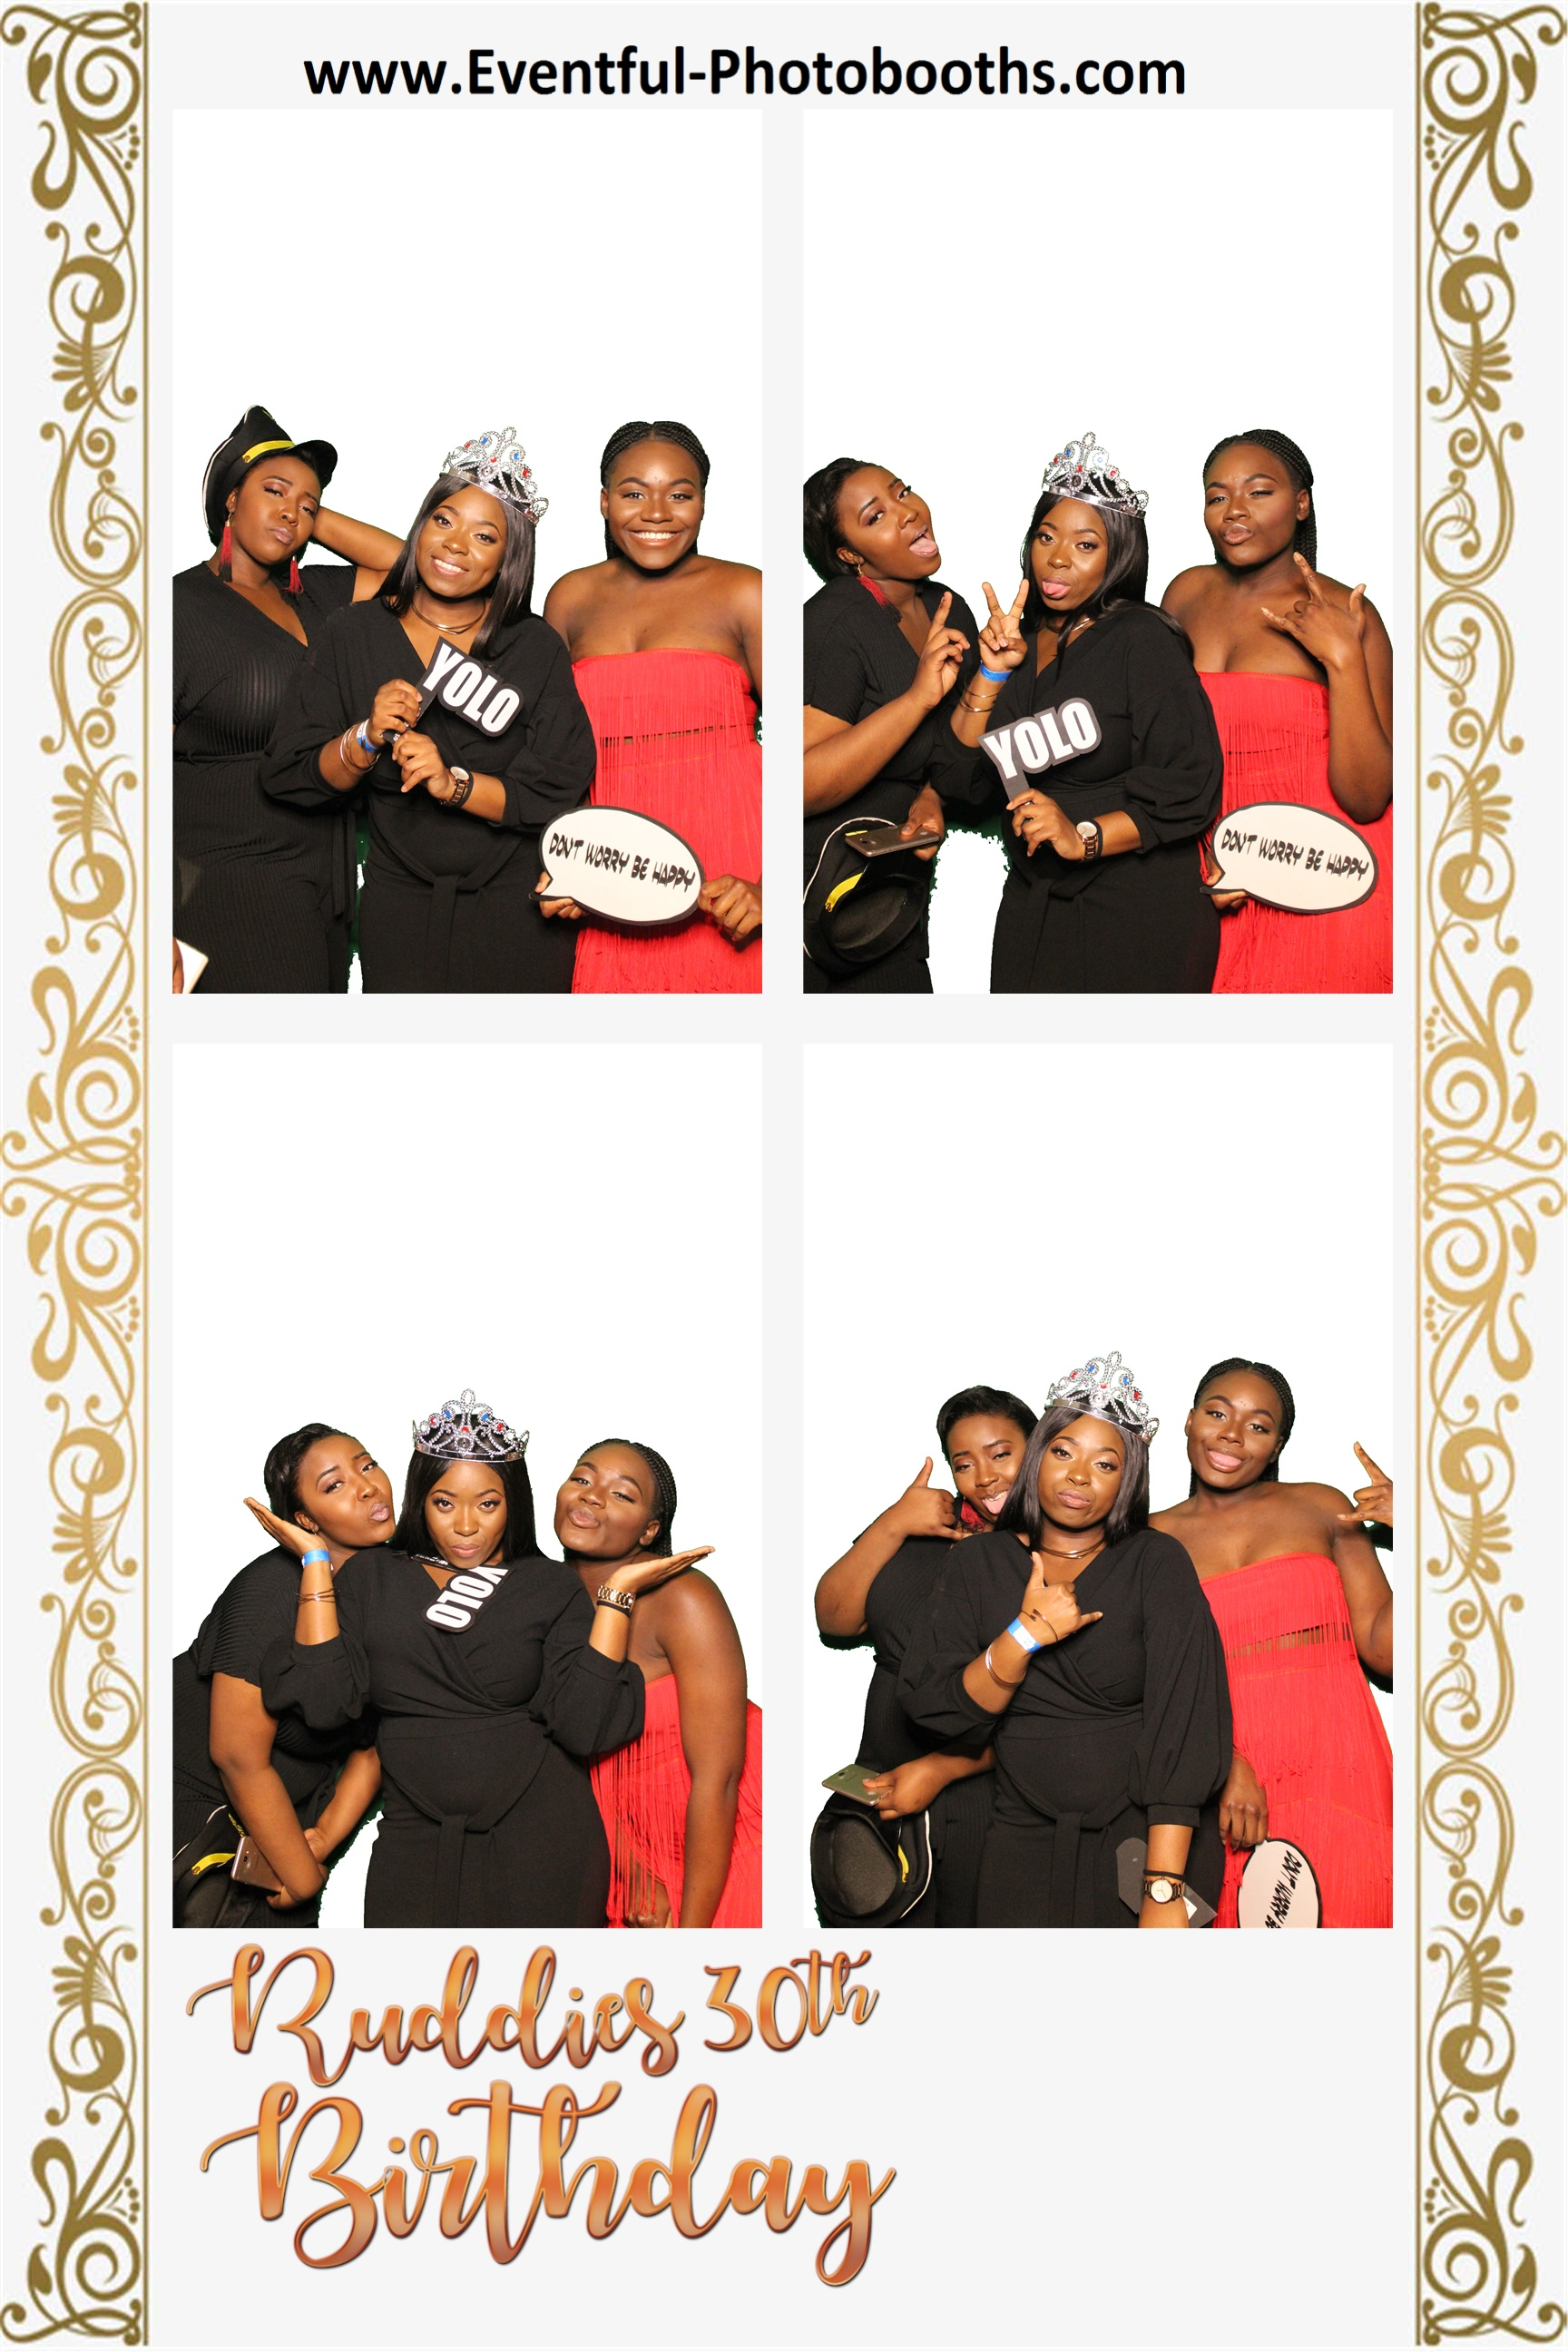 Private Celebrations - From Christenings to Bar mitzvahs to birthday parties, Eventful photobooths love celebrations big and small. We have helped make a range of celebrations eventful! Special moments and the good time feeling deserve to be captured to be relived. In a nutshell we love all types of events! Contact Eventful-photobooths to have a consultation and see how we can bring your ideas to life to creative bespoke concepts and great ideas. Let's make you event....an Eventful one!